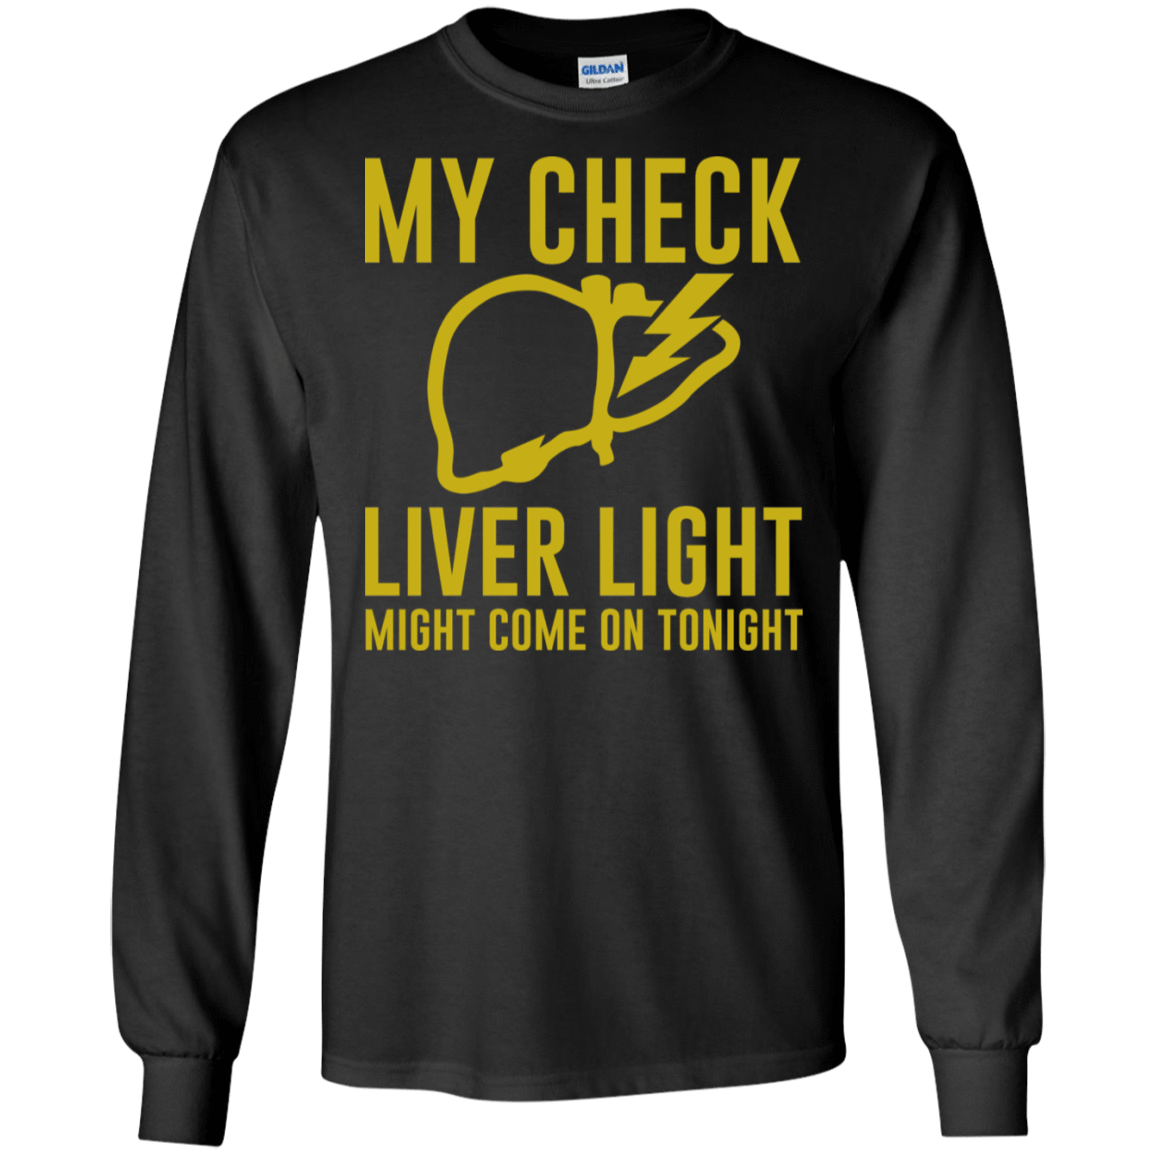 My Check Liver Light Might Come On Tonight 30-186-73421400-333 - Tee Ript